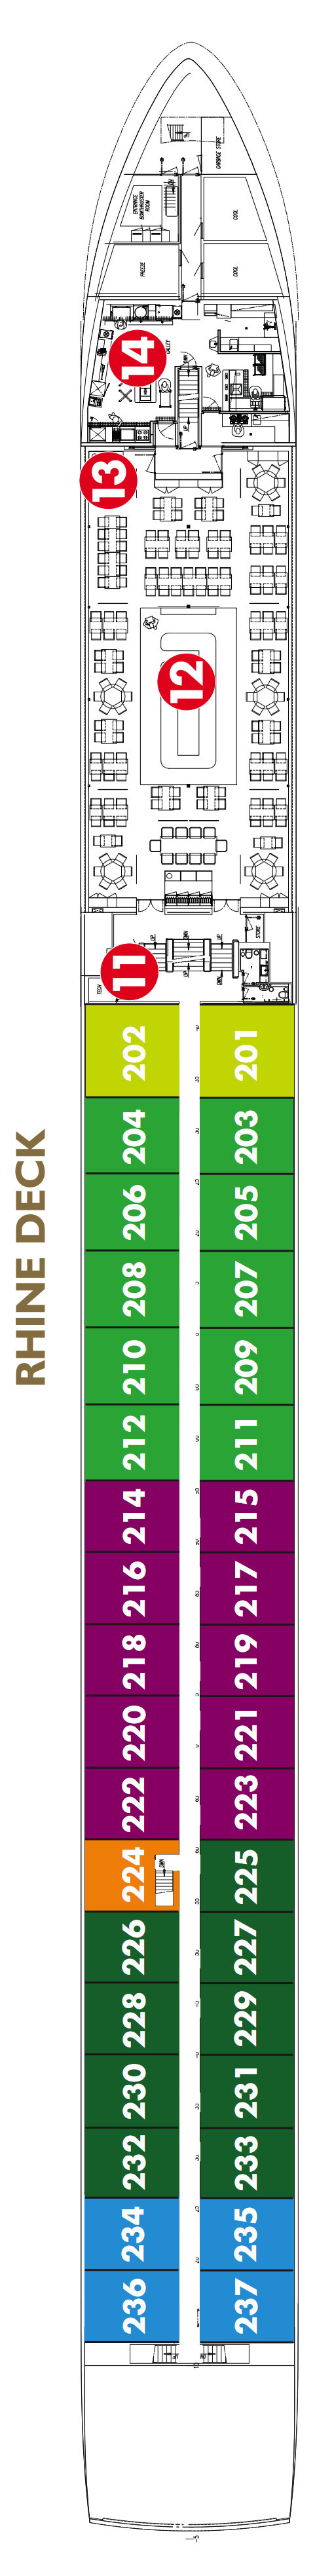 Scenic Crystal Rhine Deck layout